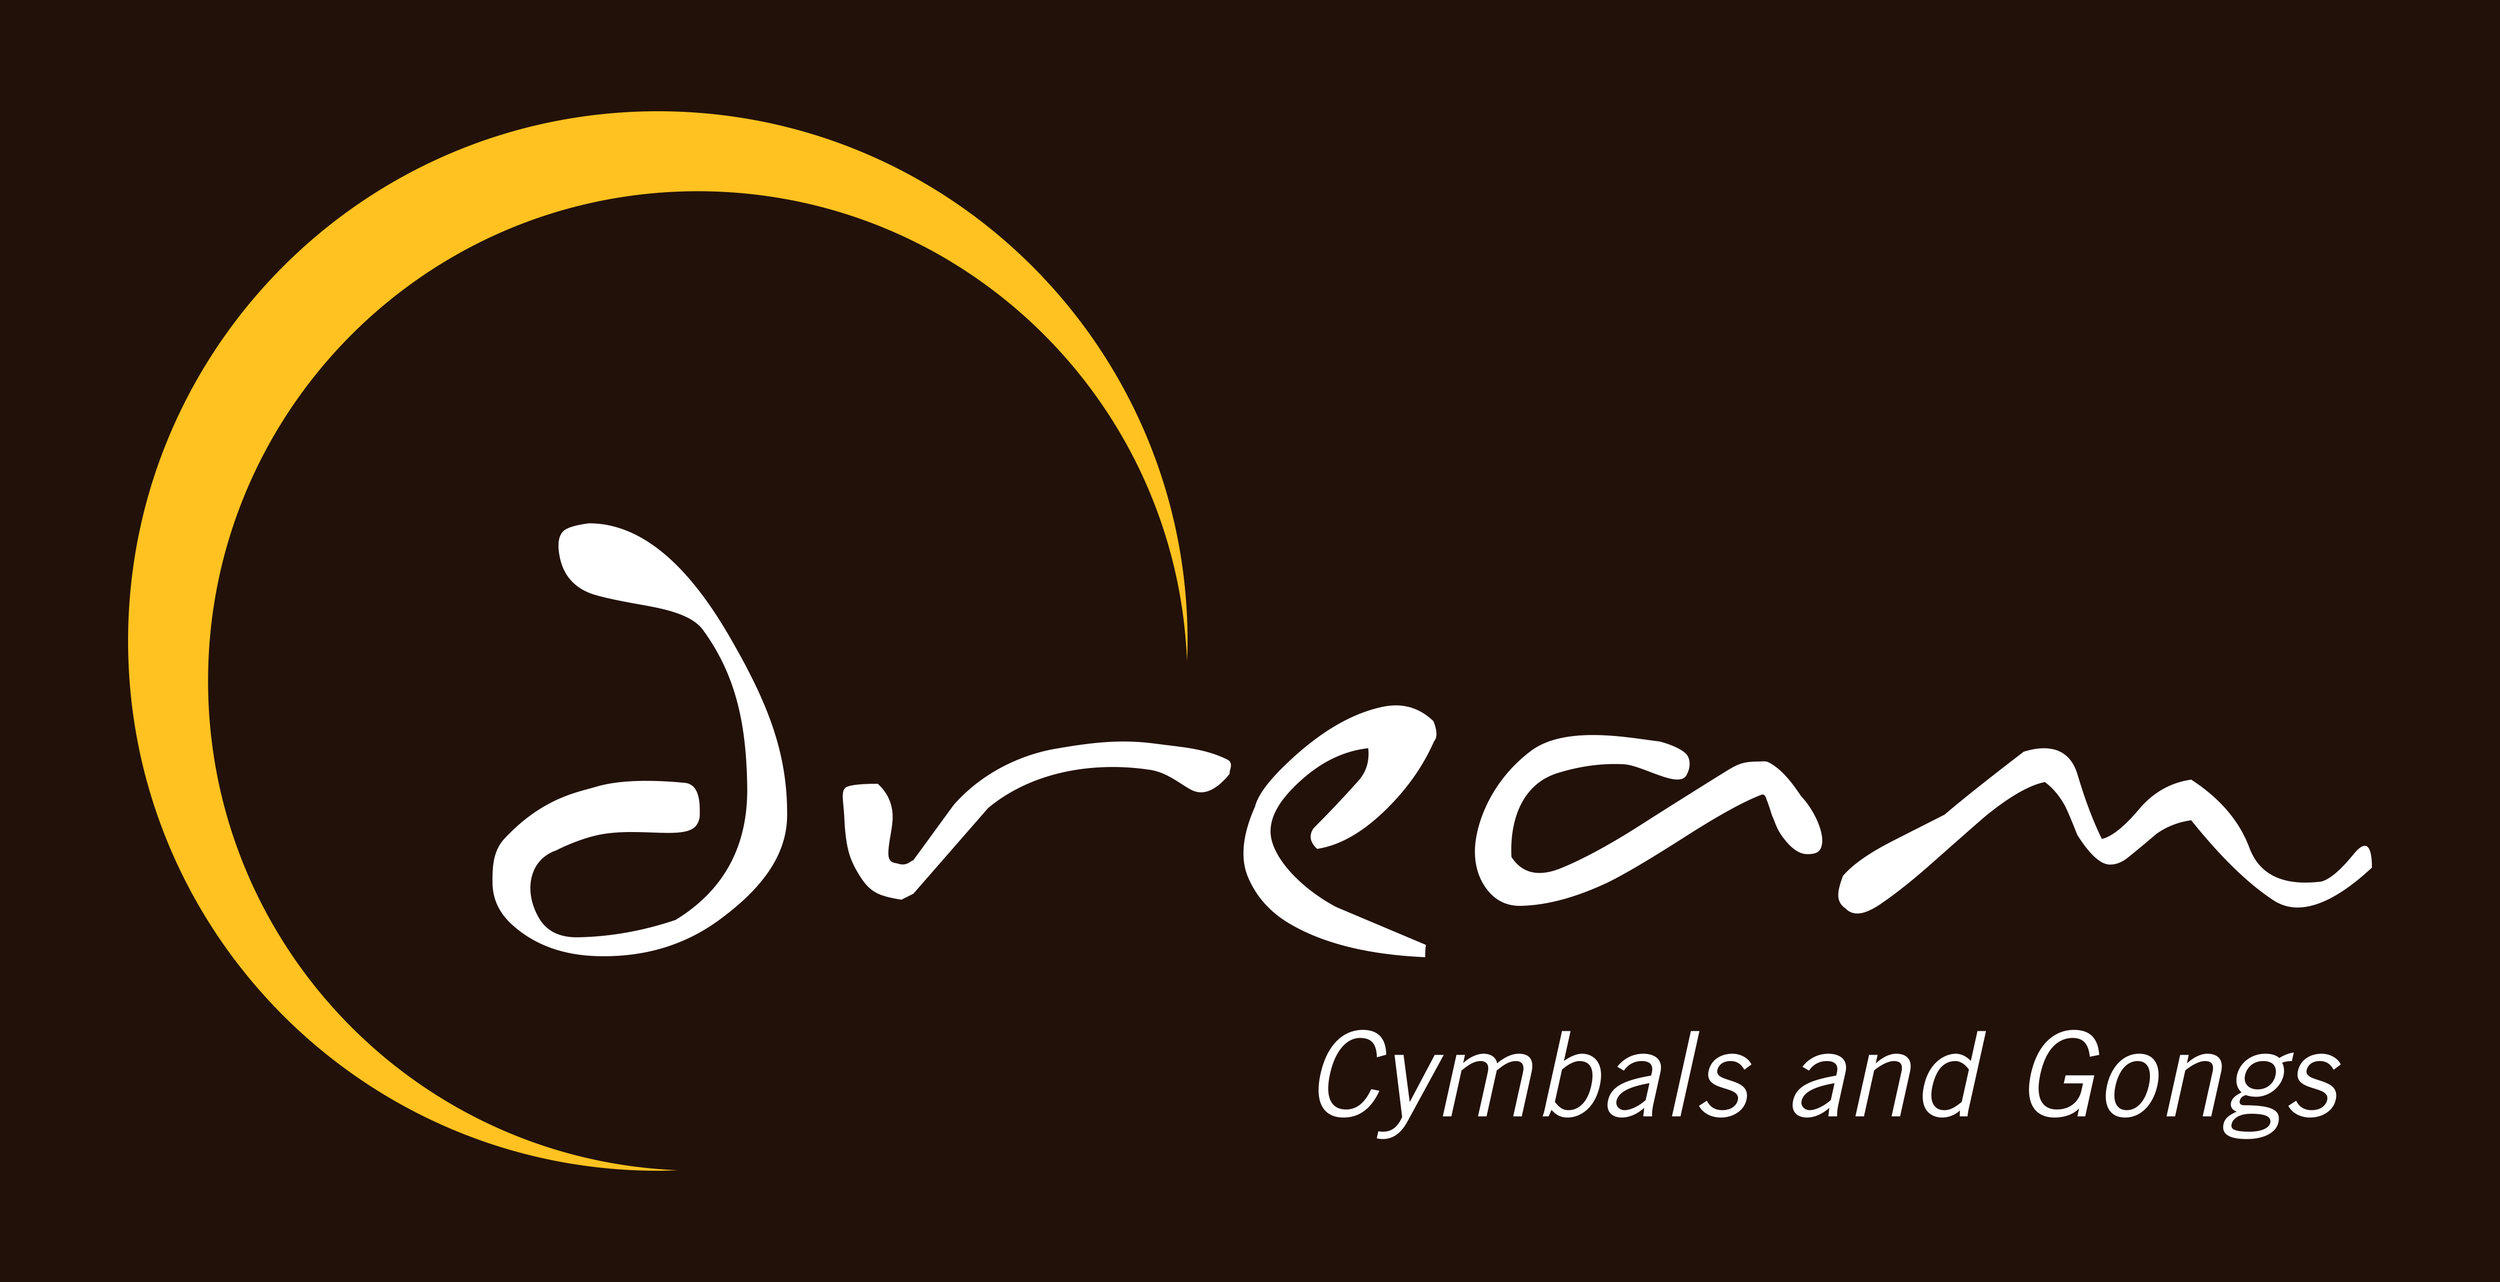 - Spencer proudly endorses Dream Cymbals and Gongs.